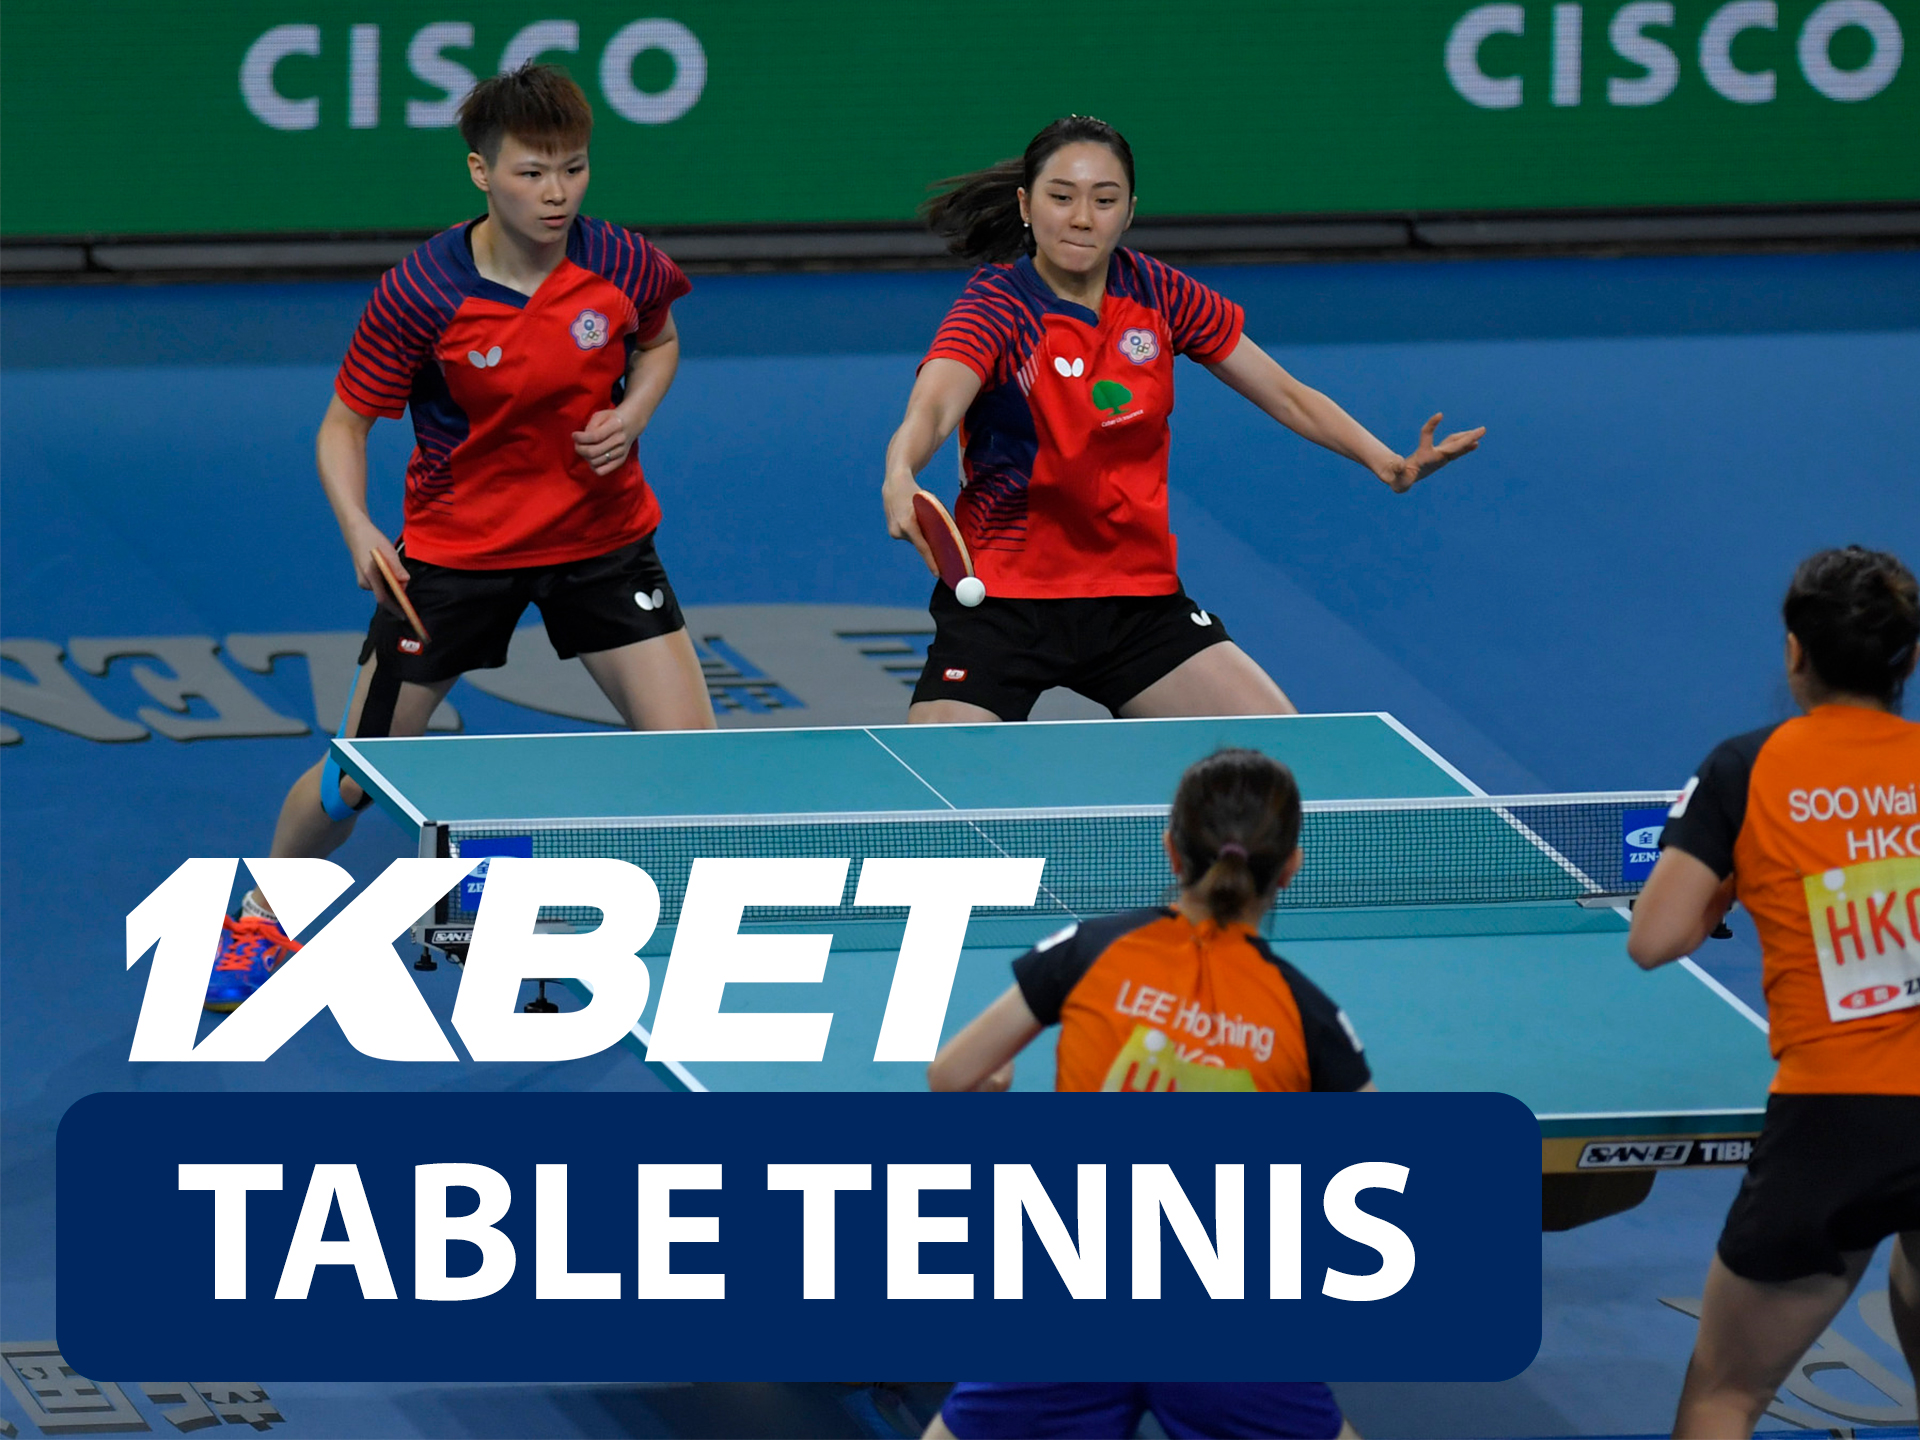 Start betting on table tennis with 1xBet